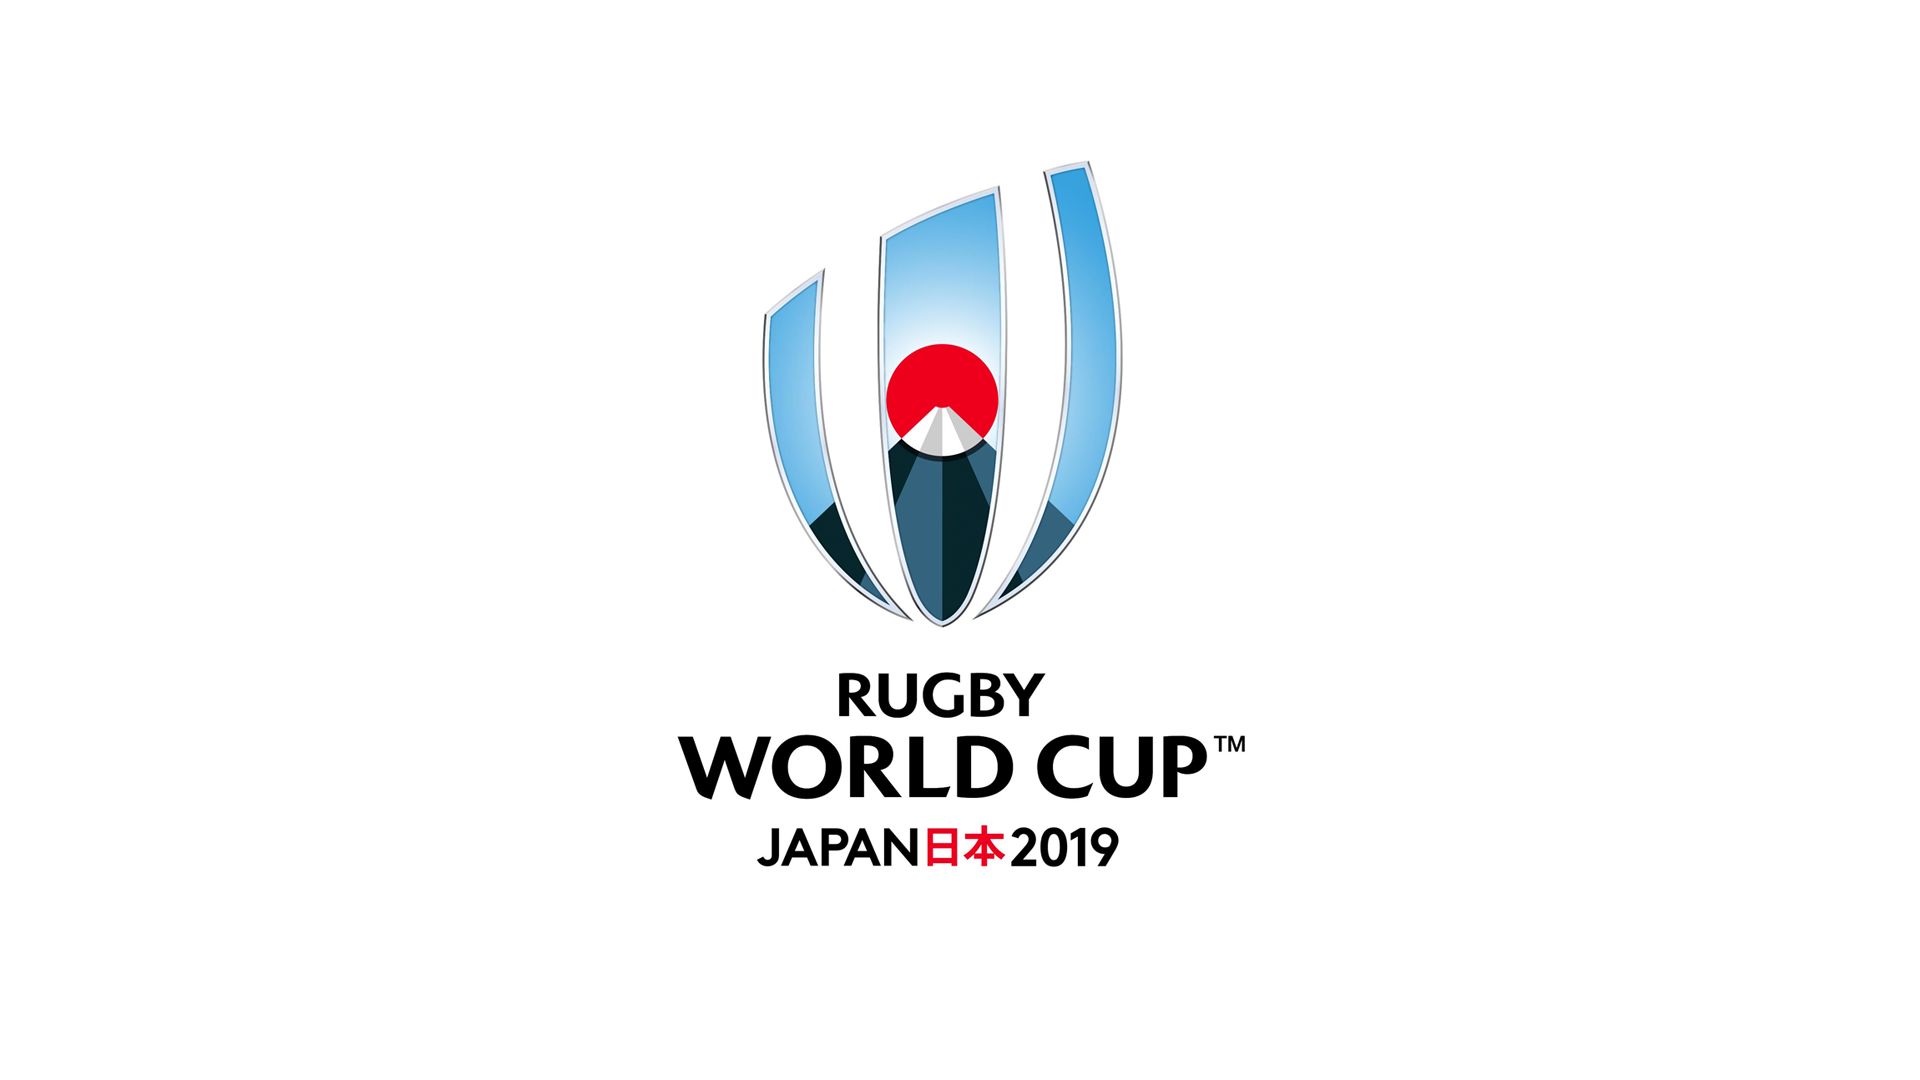 Rugby World Cup 2019 general ticket sales resume on May 18